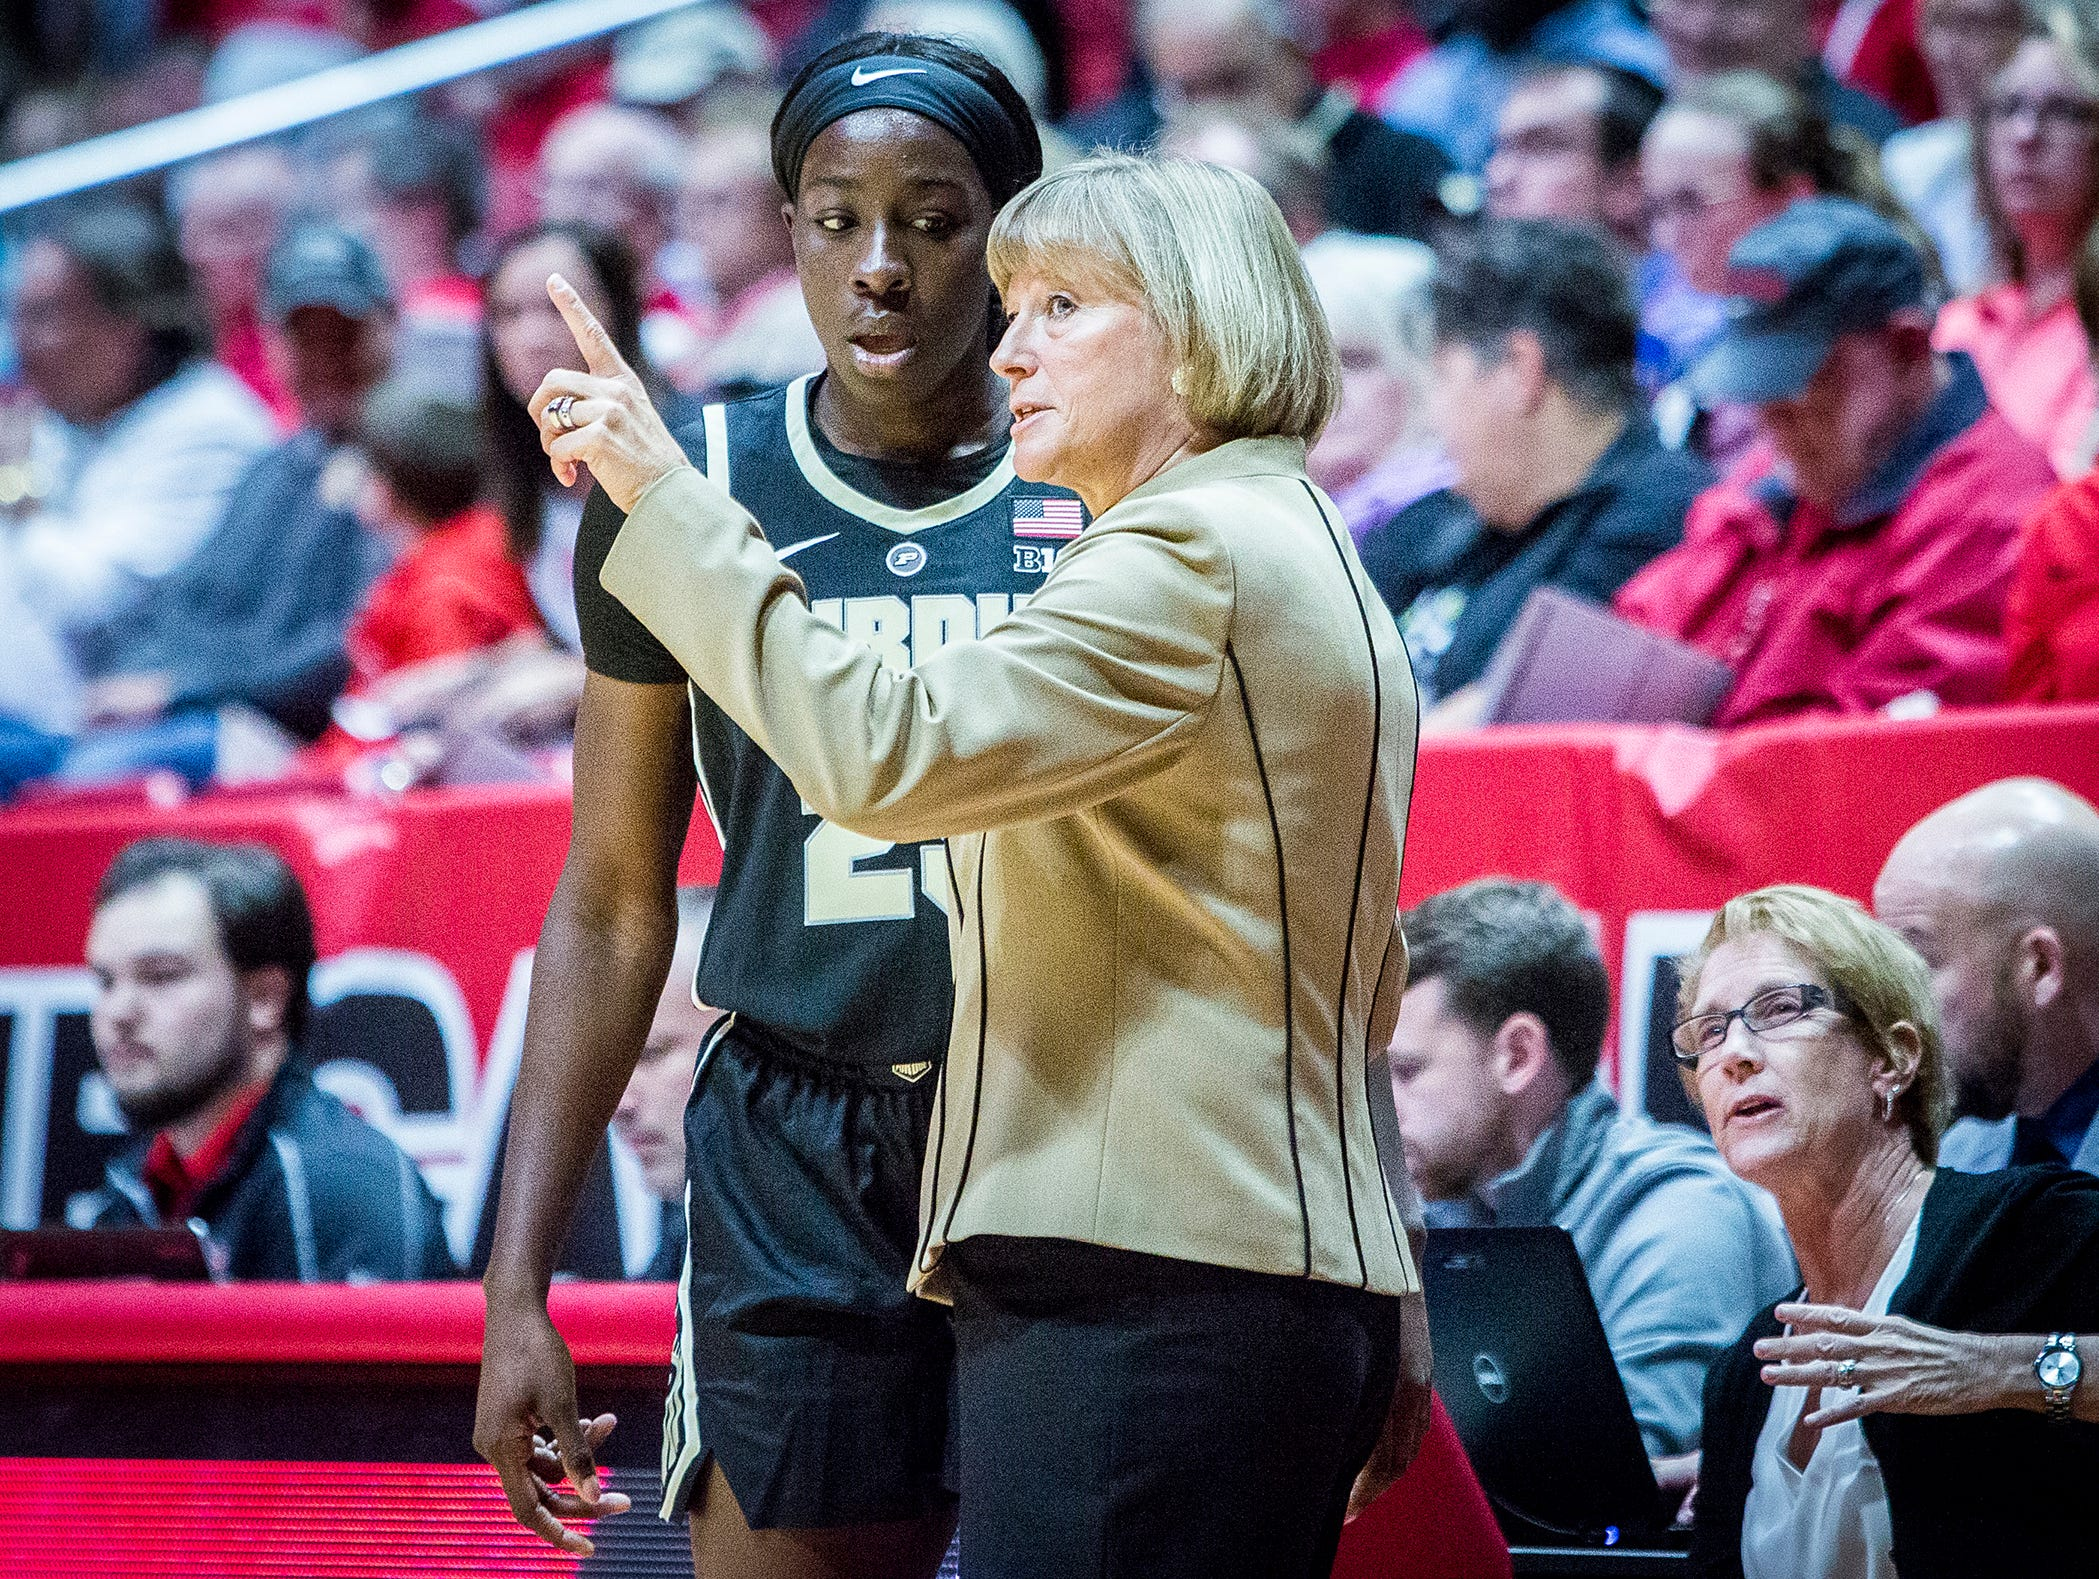 Ball State faces off against Purdue at Worthen Arena Wednesday, Nov. 7, 2018.